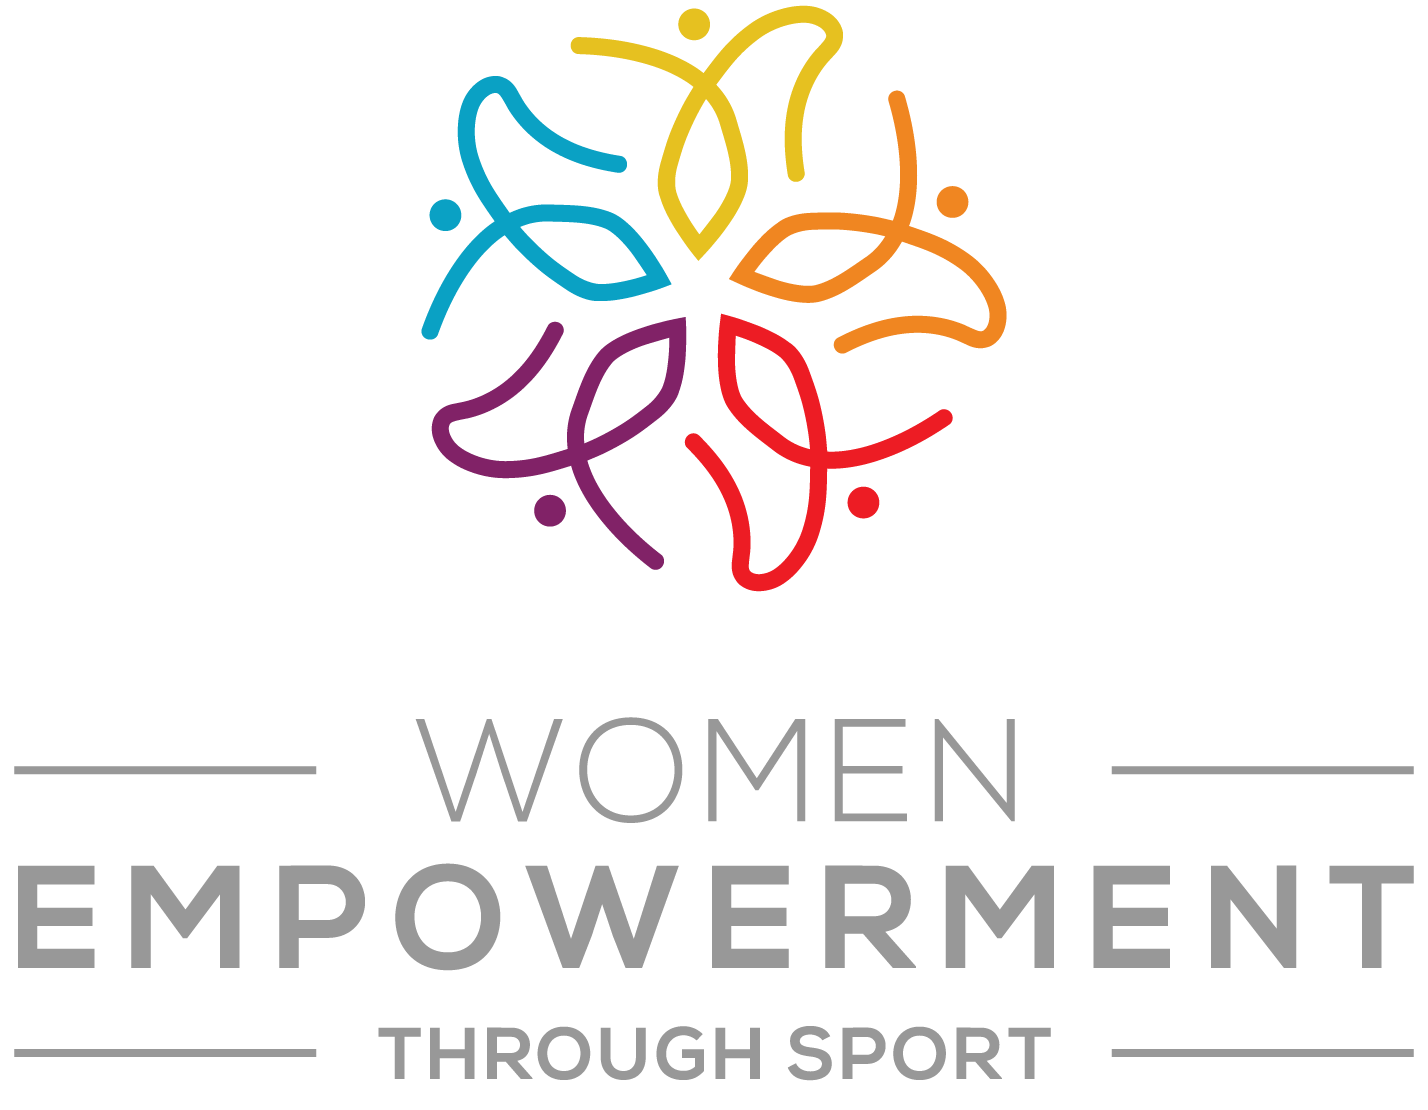 Women Empowerment through Sport